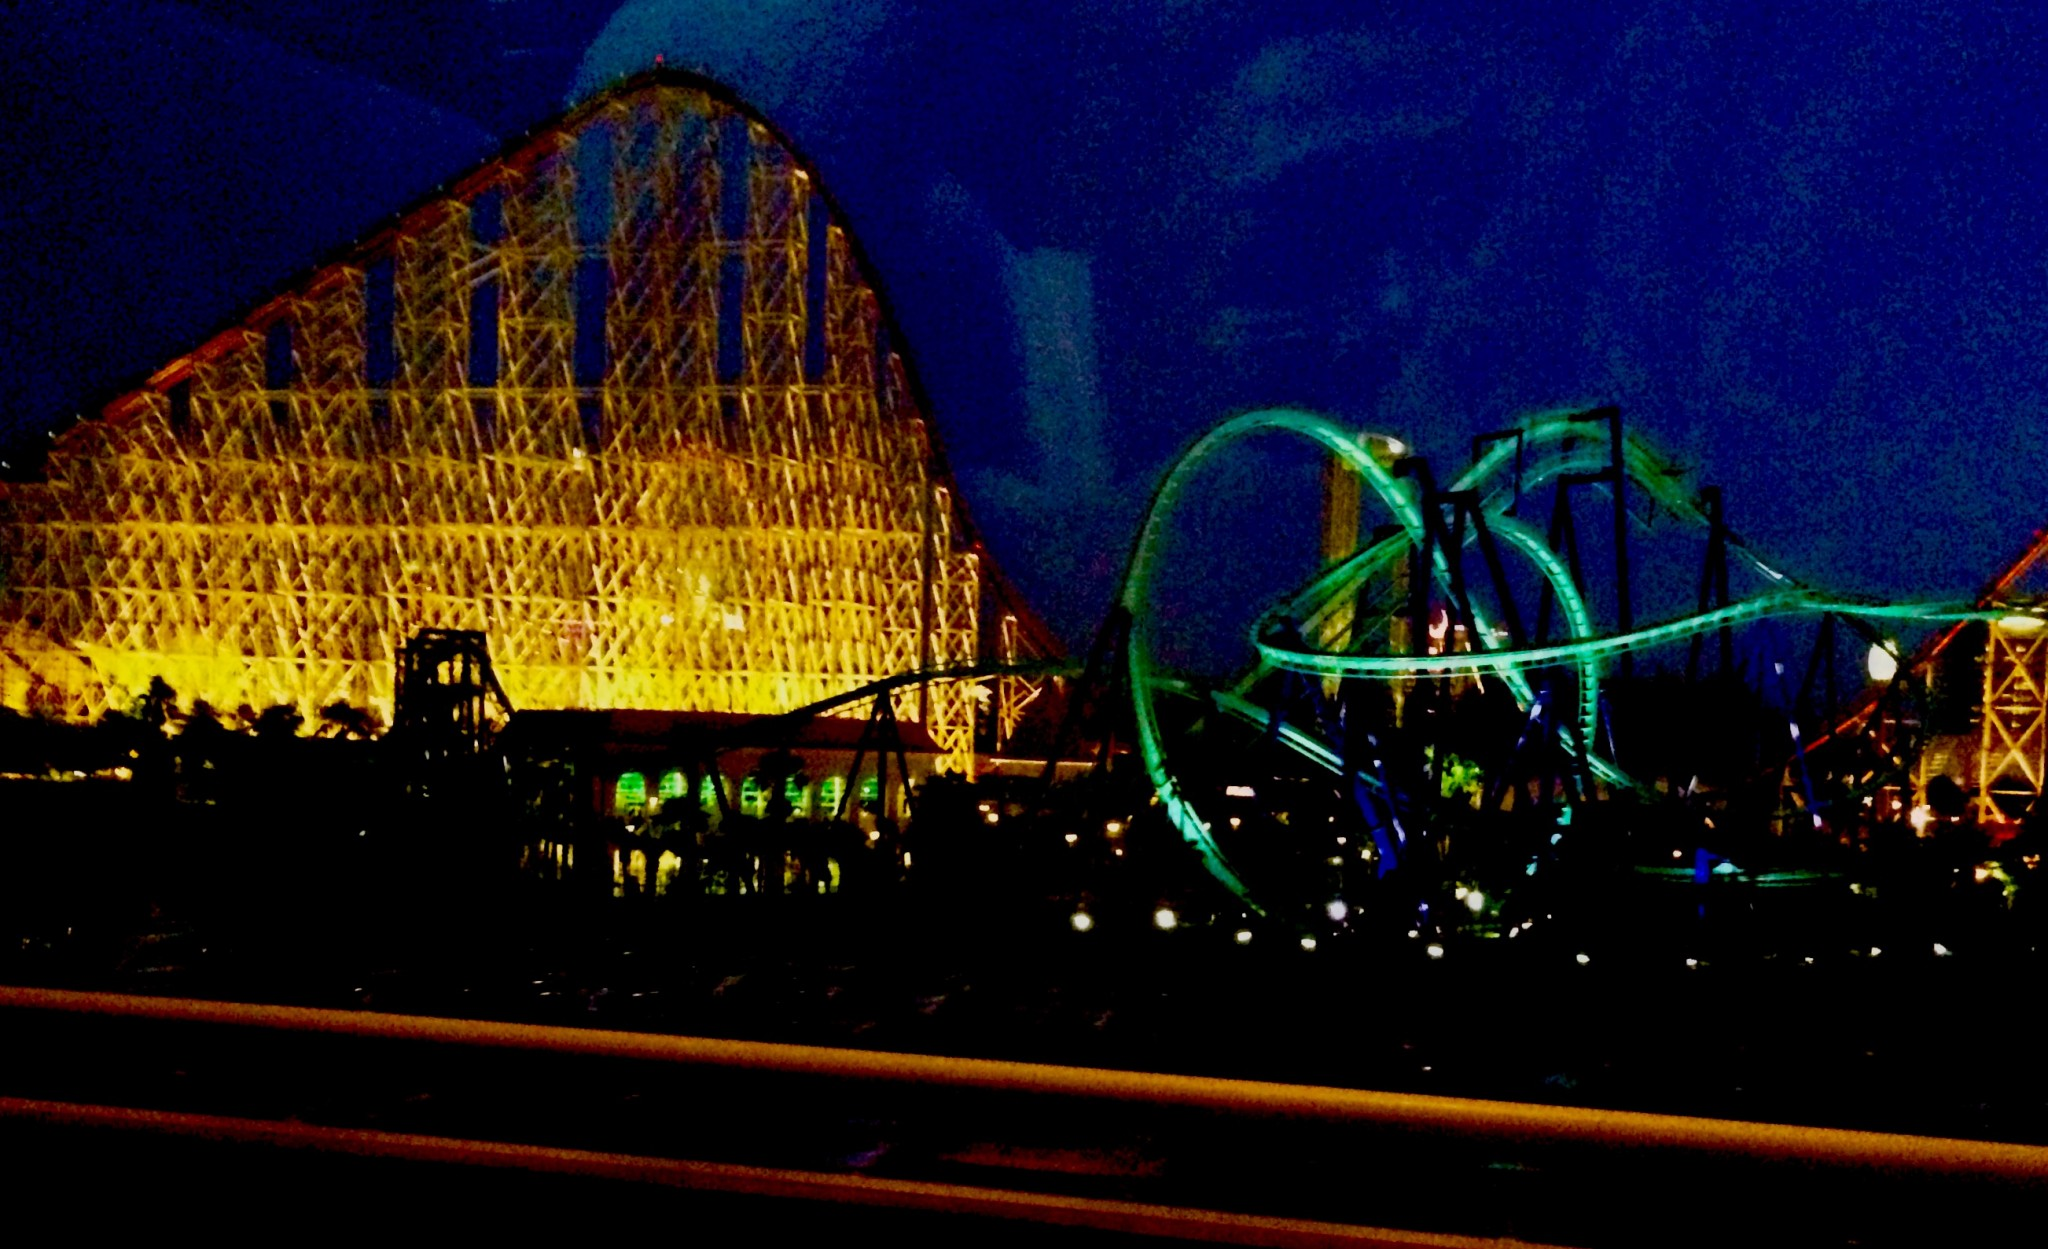 The night view of steel dragon in Nagashima Spa Land